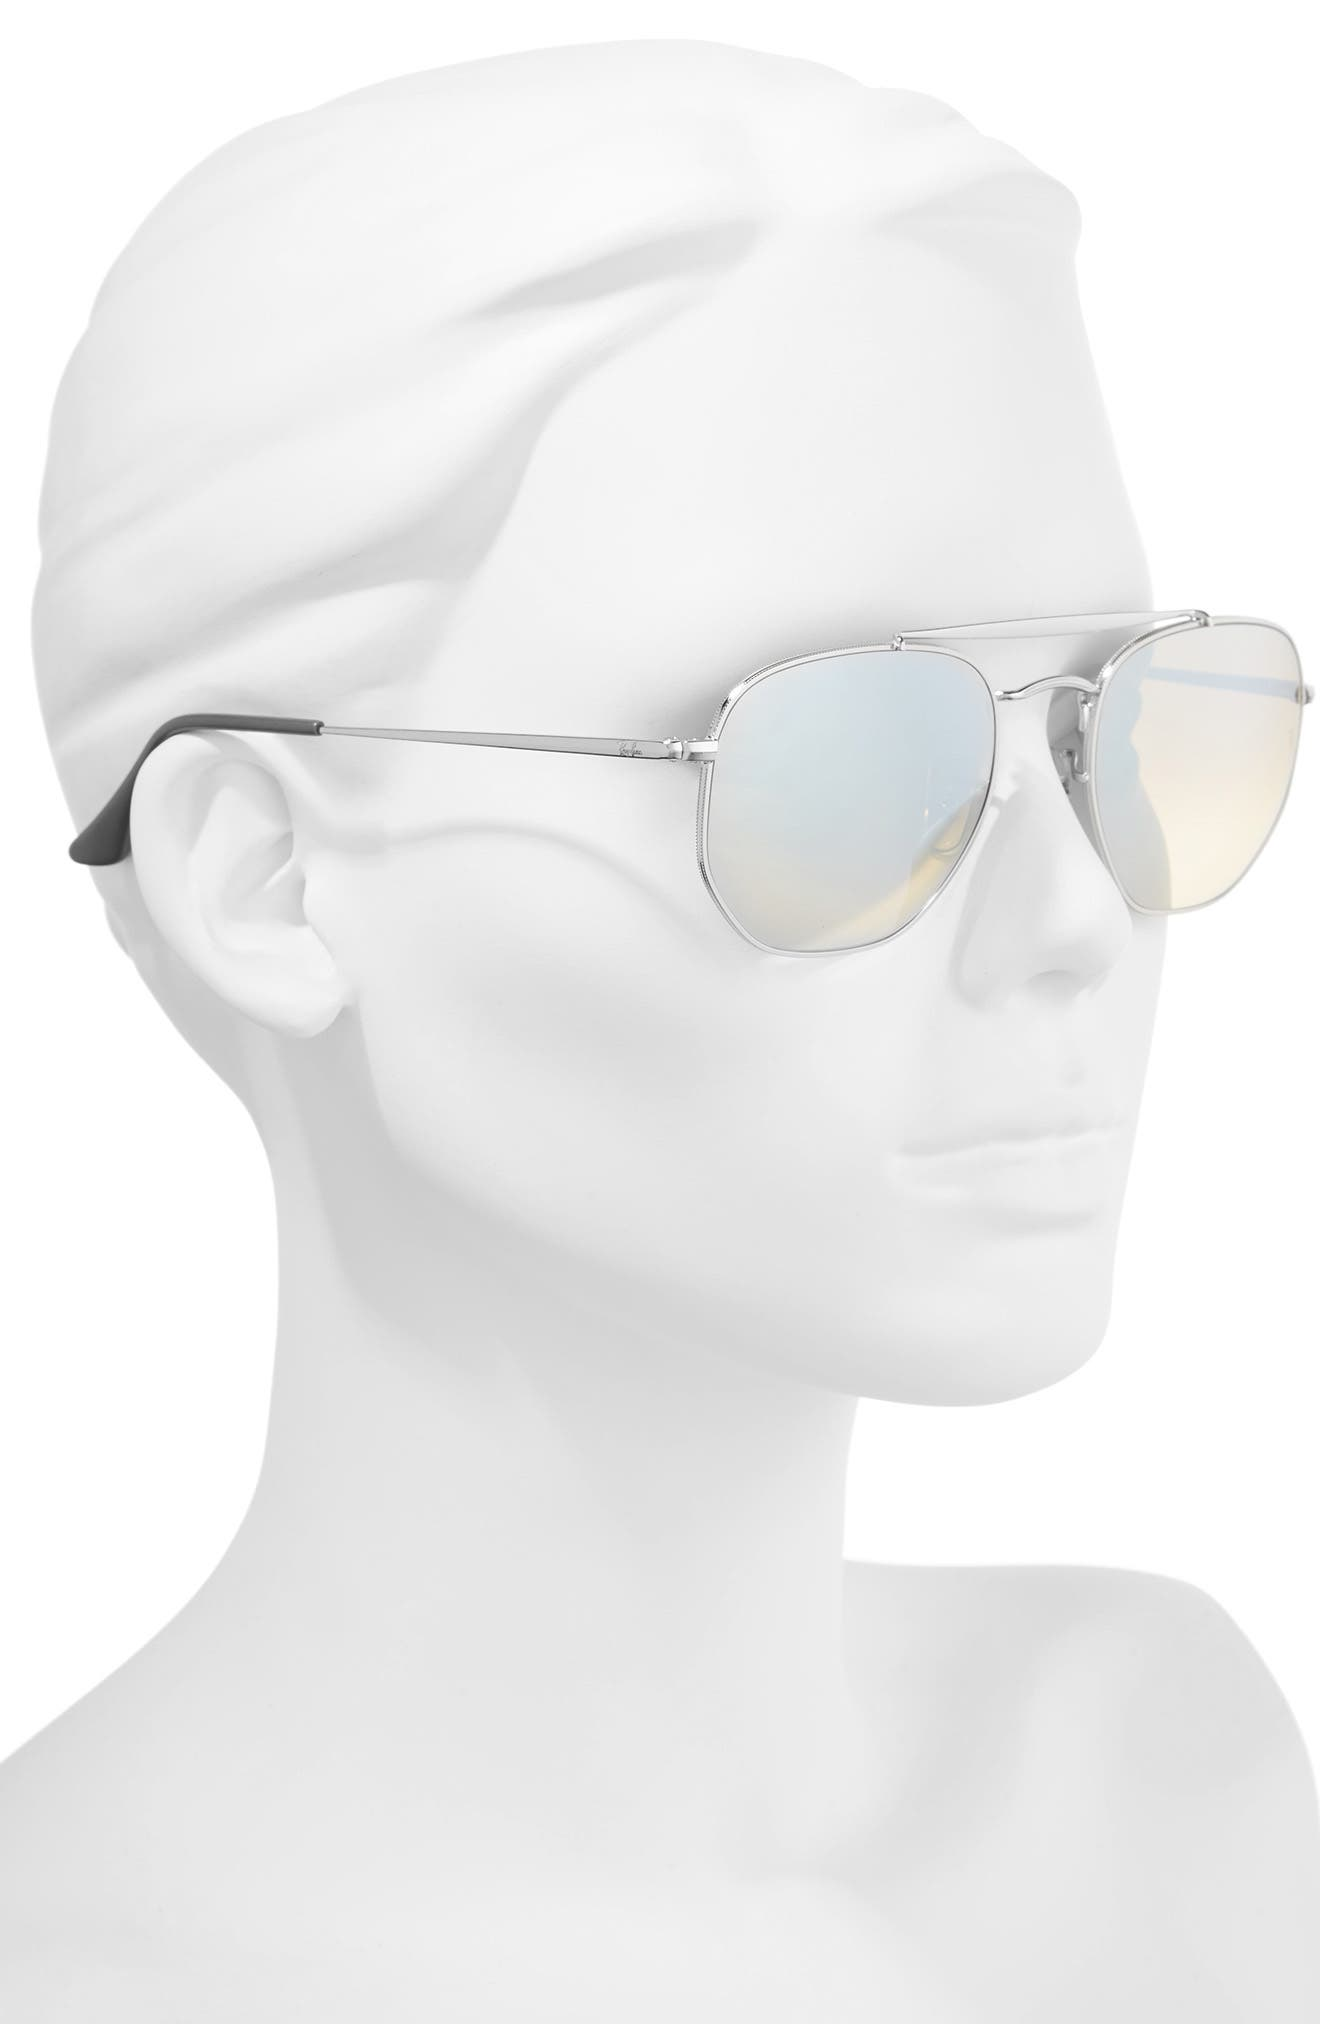 Marshal 54mm Aviator Sunglasses,                             Alternate thumbnail 2, color,                             040